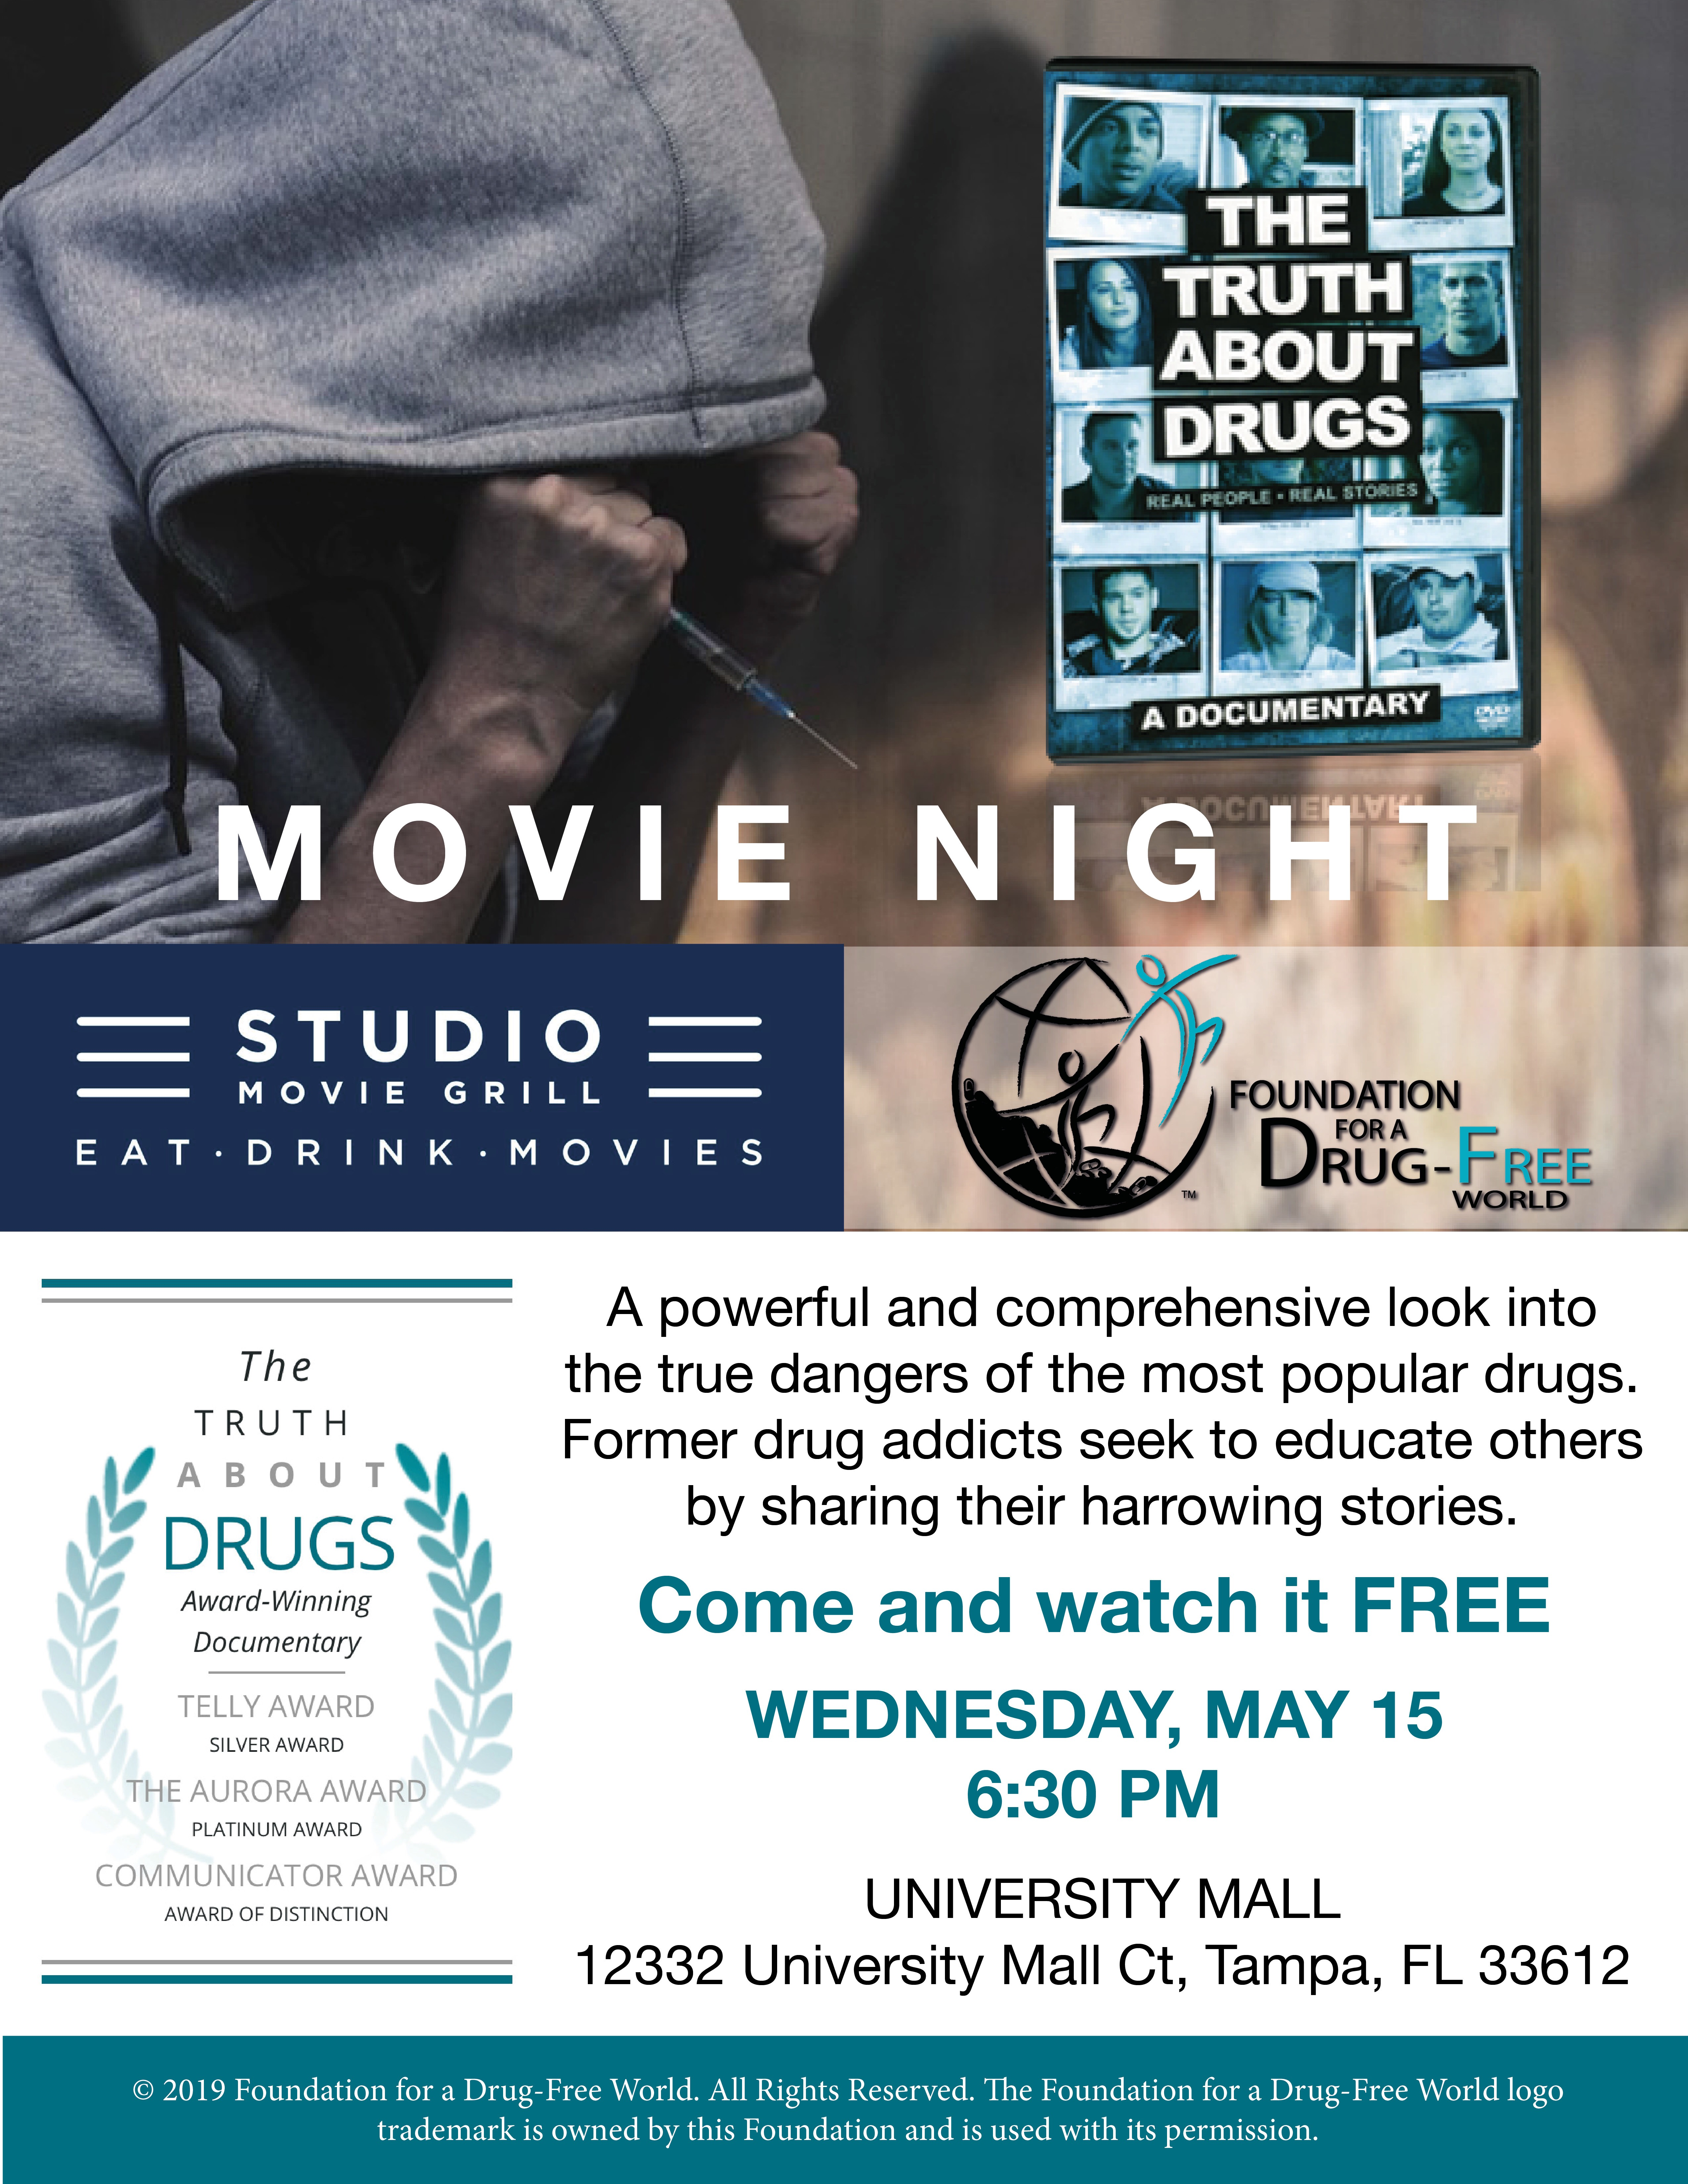 Studio Movie Grill Tampa Hosts Free Movie Event, Studio Movie Grill -  - Clearwater